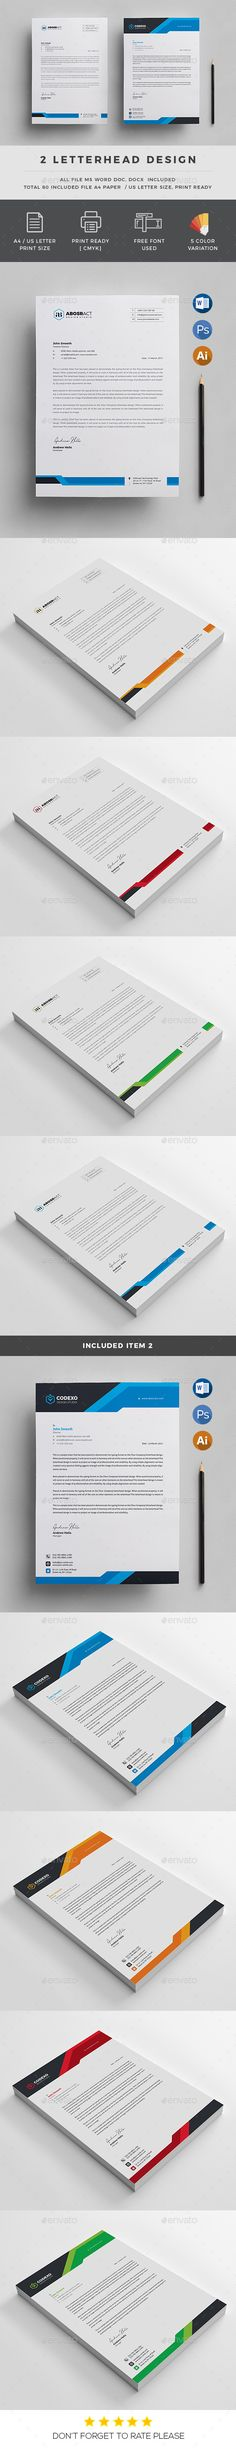 Letterhead - Stationery Print Templates Download here:https://graphicriver.net/item/letterhead/19939021?https://graphicriver.net/item/letterhead/19940111?ref=classicdesignp